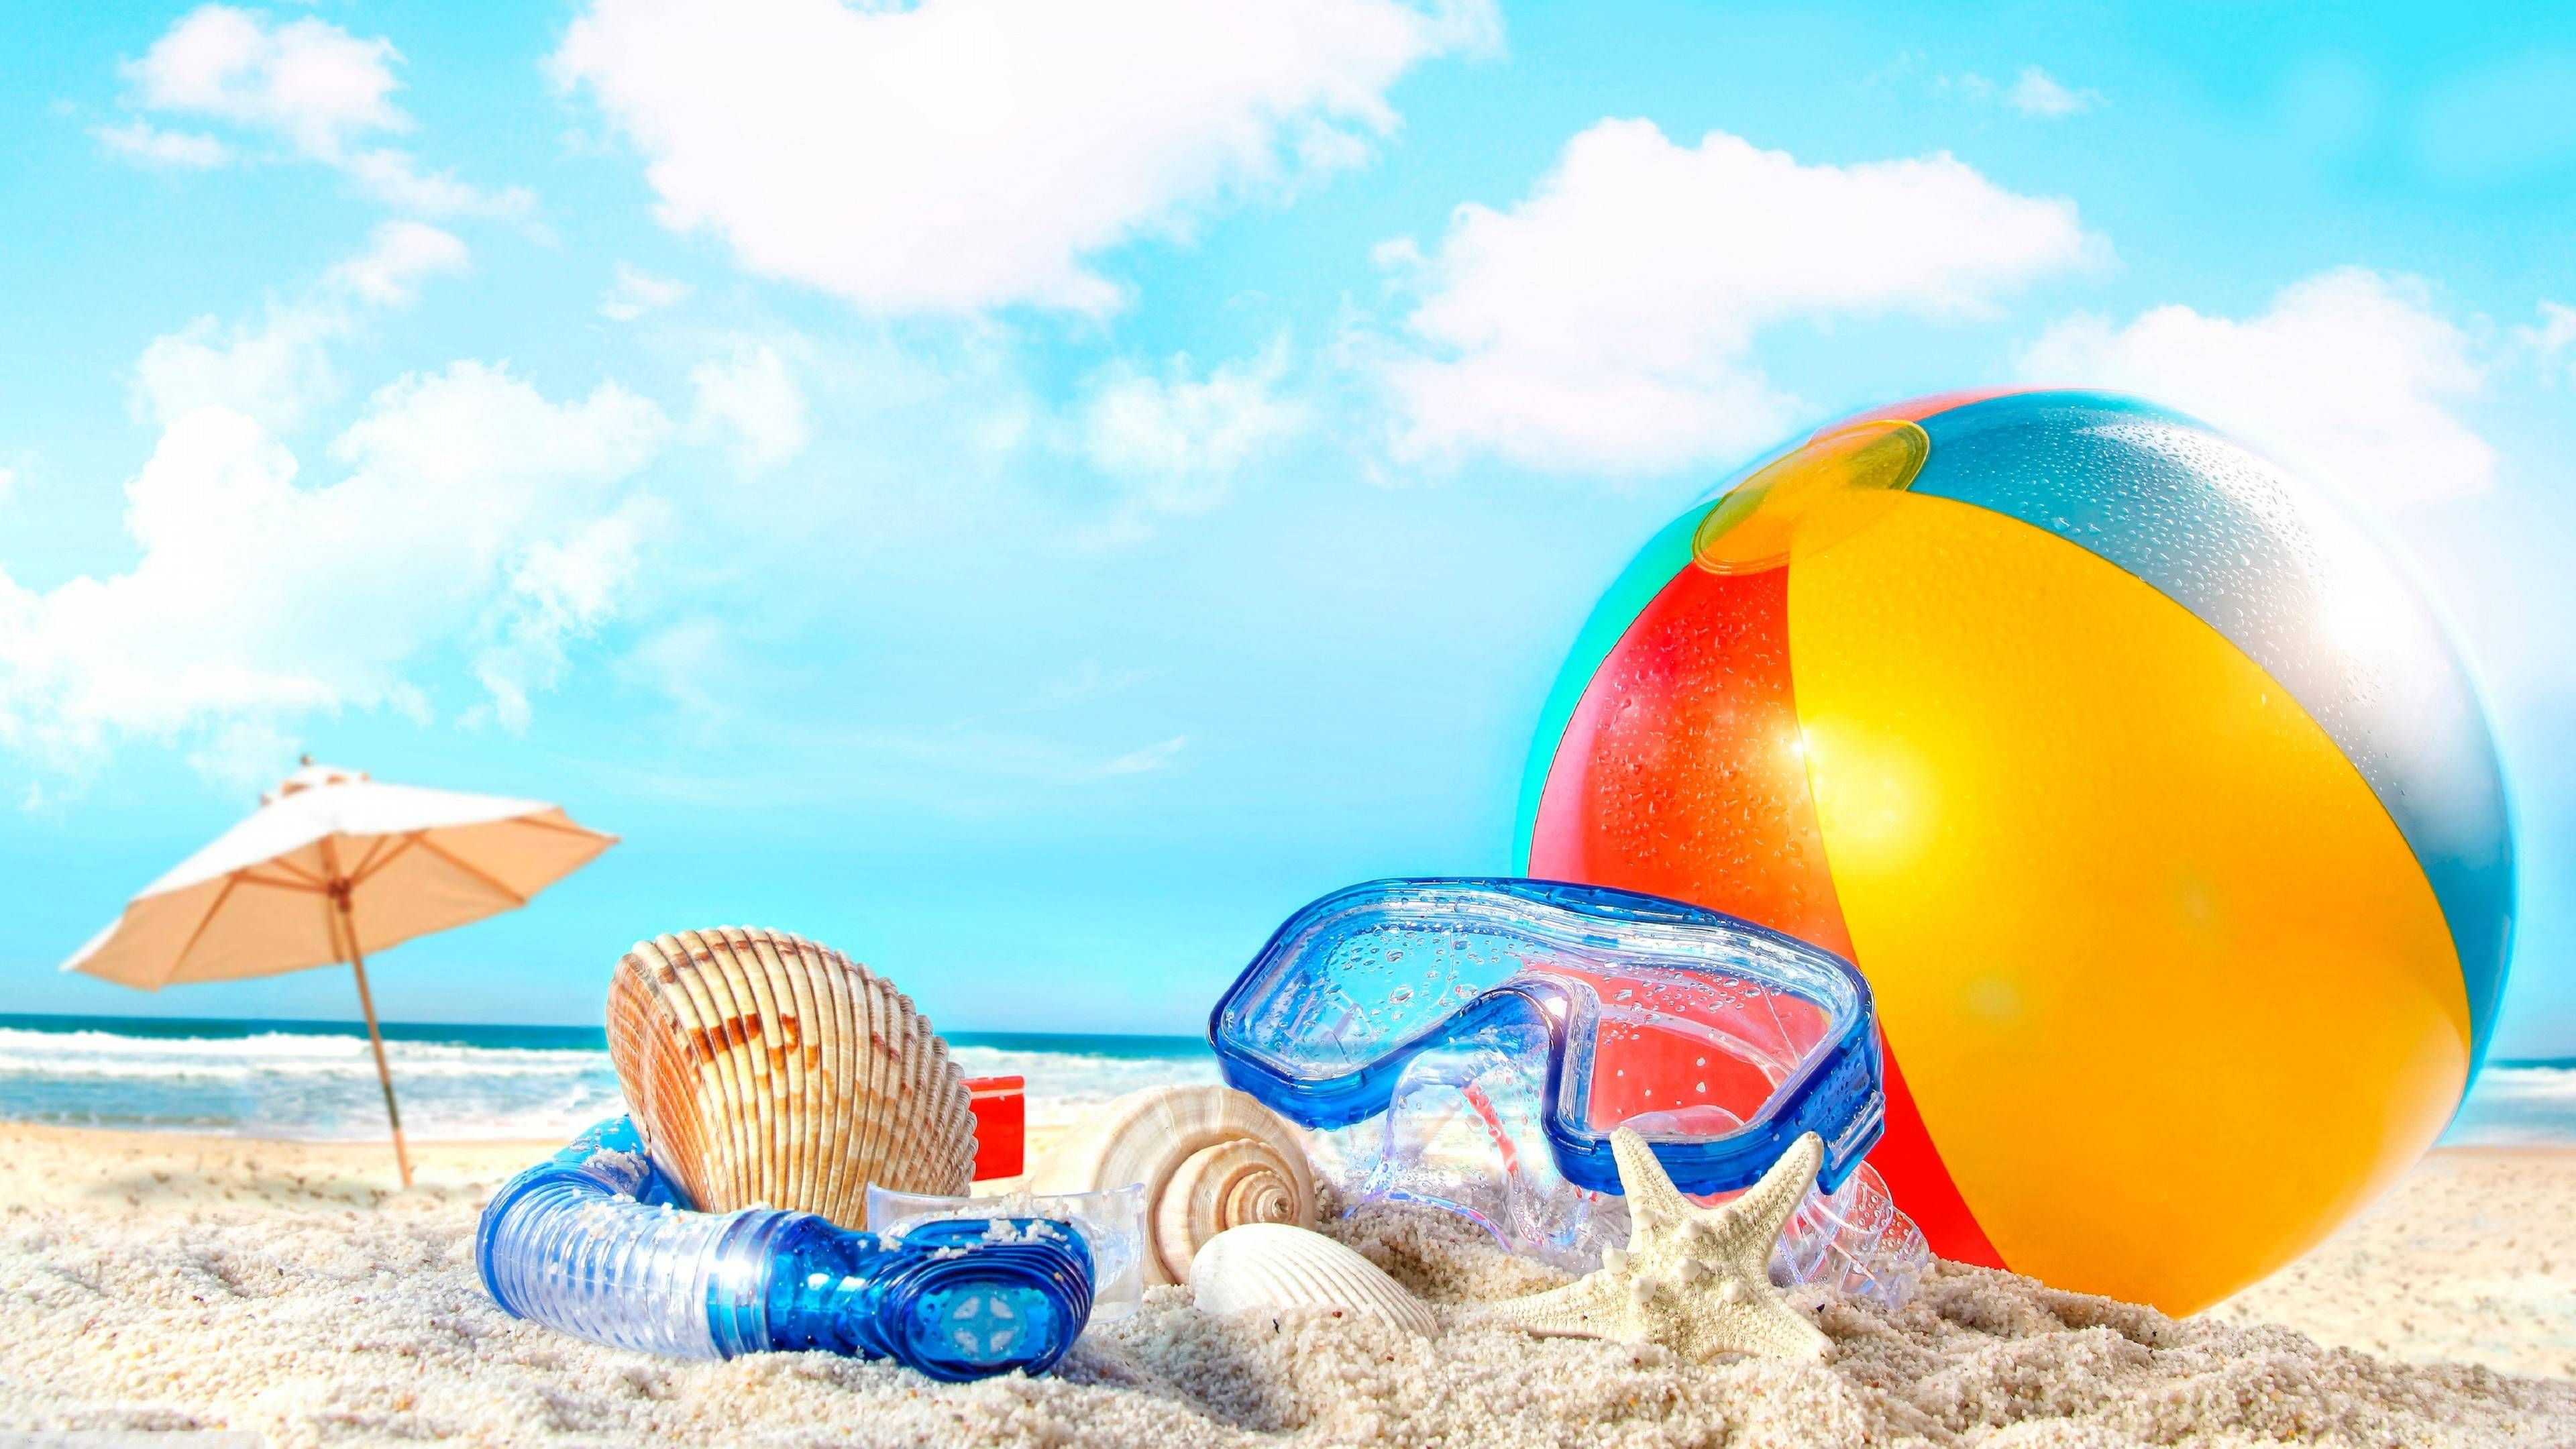 summer desktop wallpaper background hd | hd wallpapers | pinterest